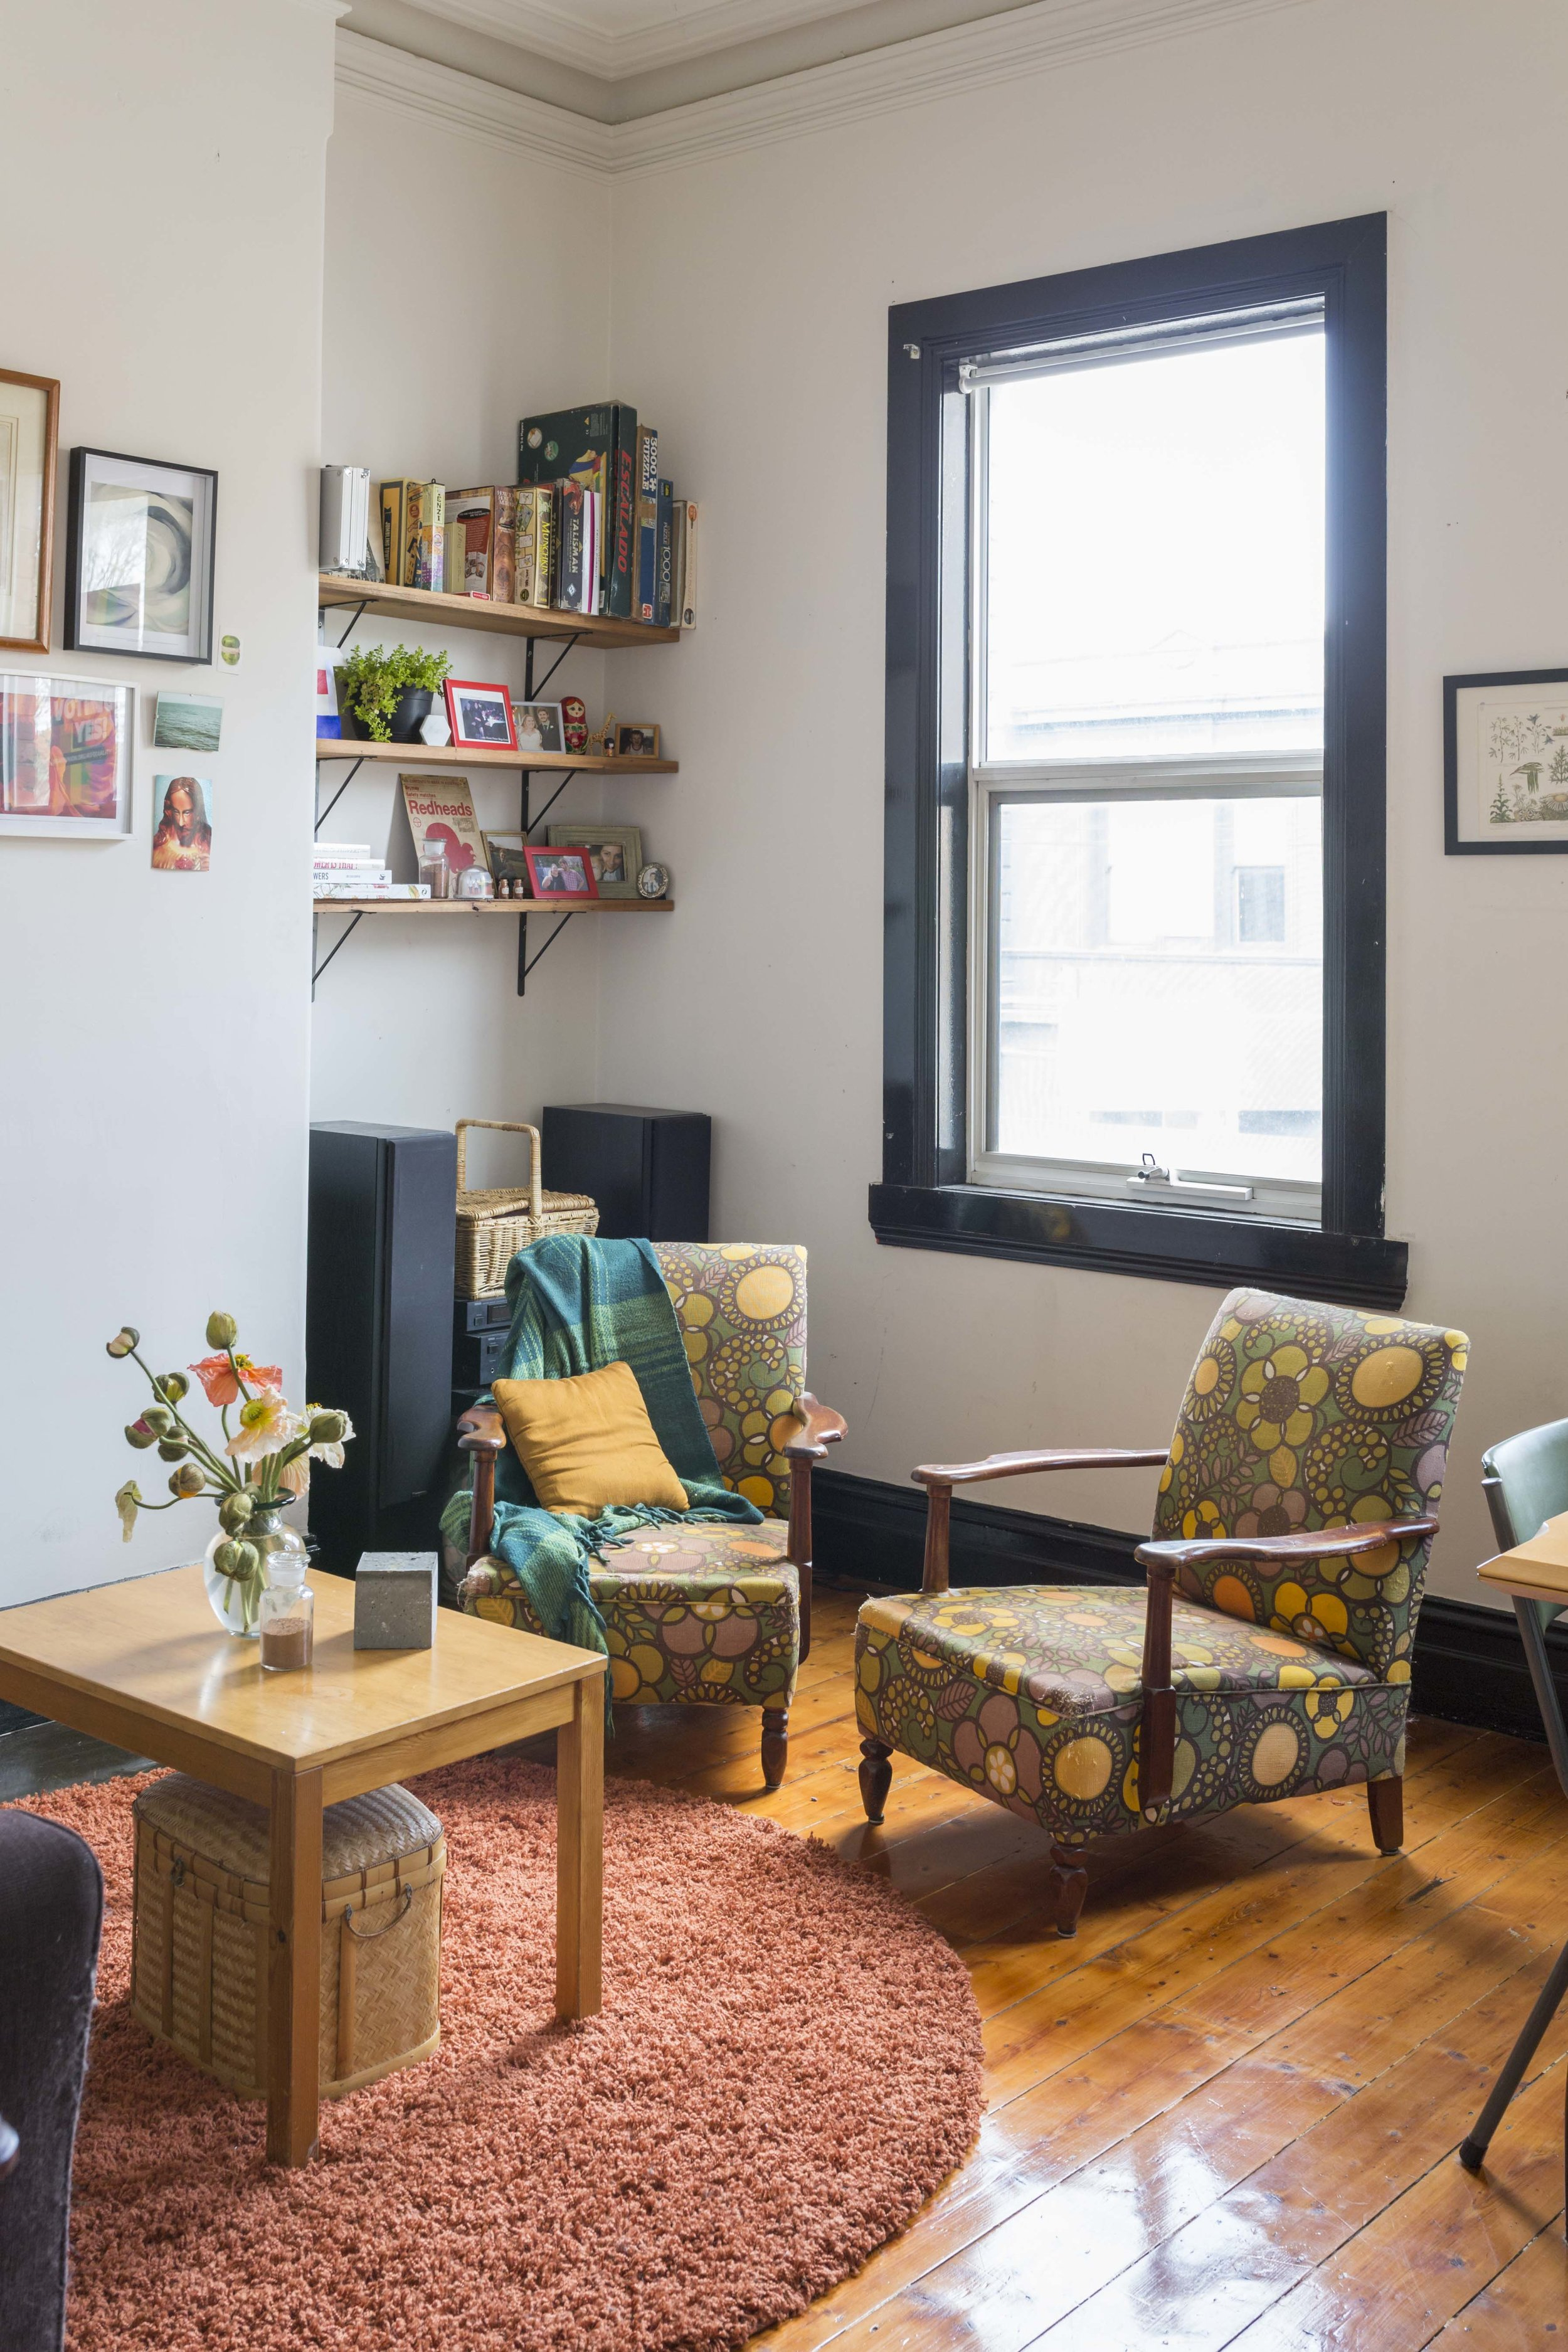 Vivien Hollingsworth and David Suter's home for Rented Space